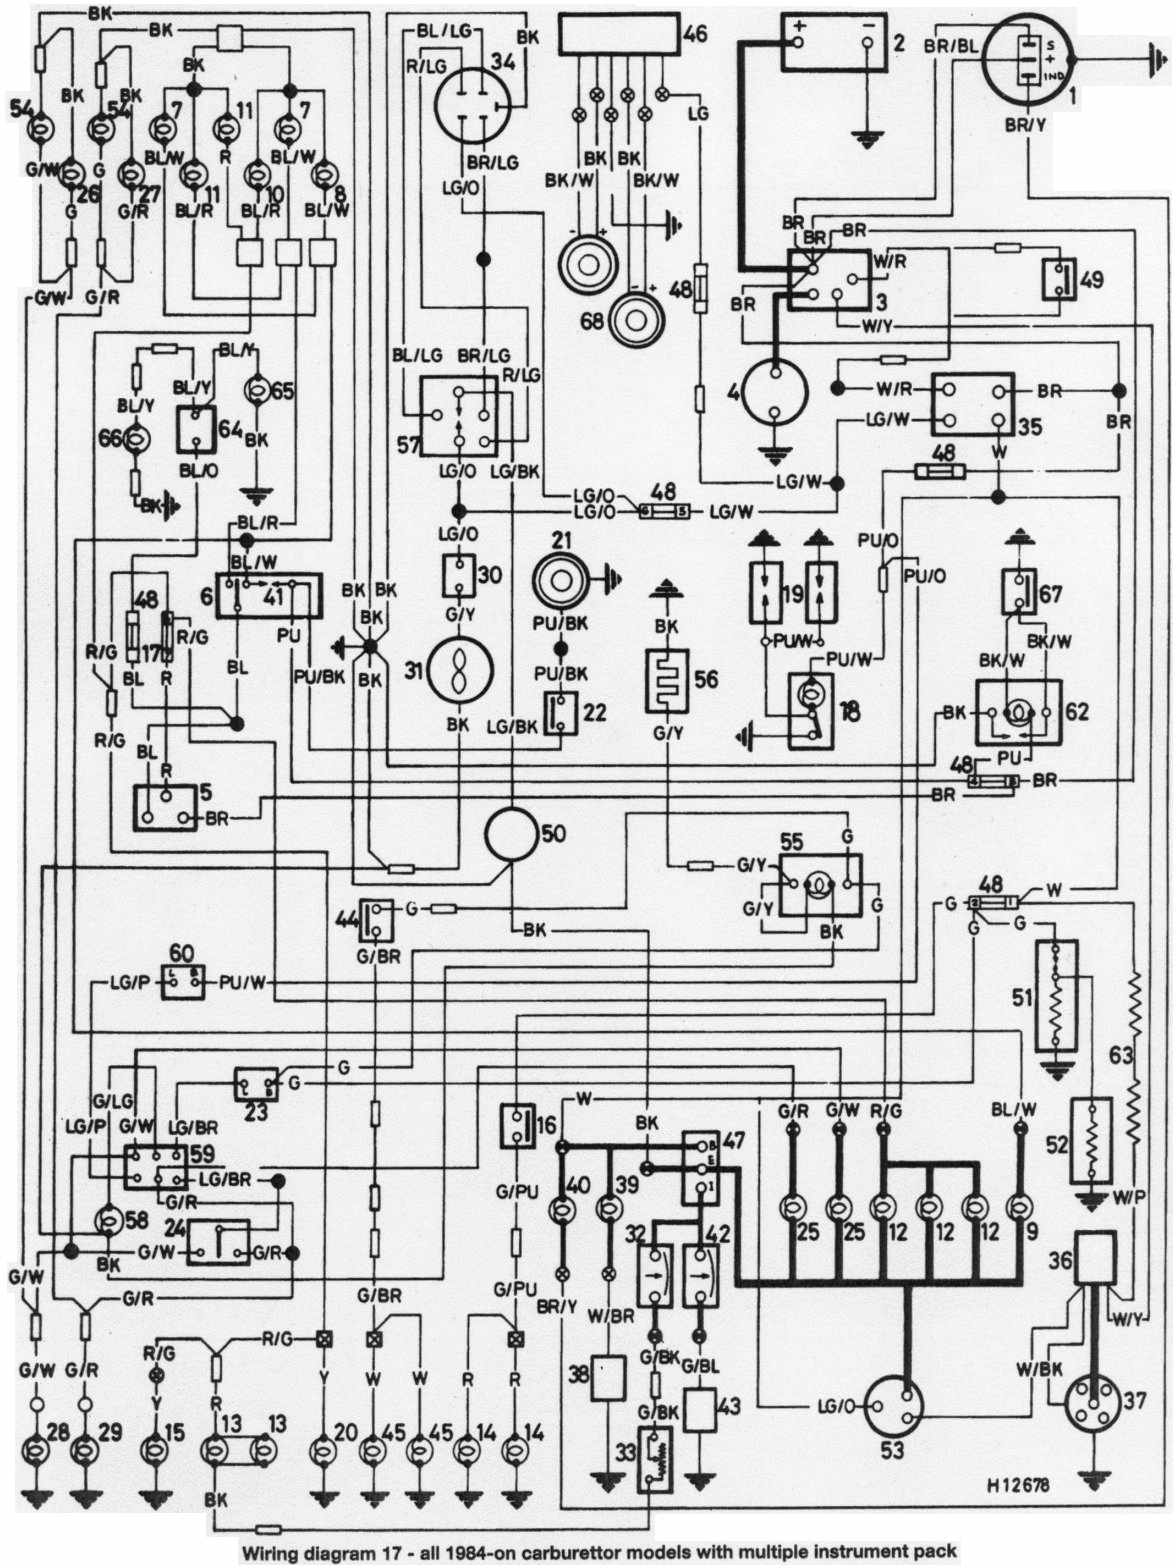 wiring diagram of 1984 onwards all mini series with multiple instrument pack?t=1508499130 mini car manuals, wiring diagrams pdf & fault codes 5 Speed Manual Transmission Diagram at alyssarenee.co